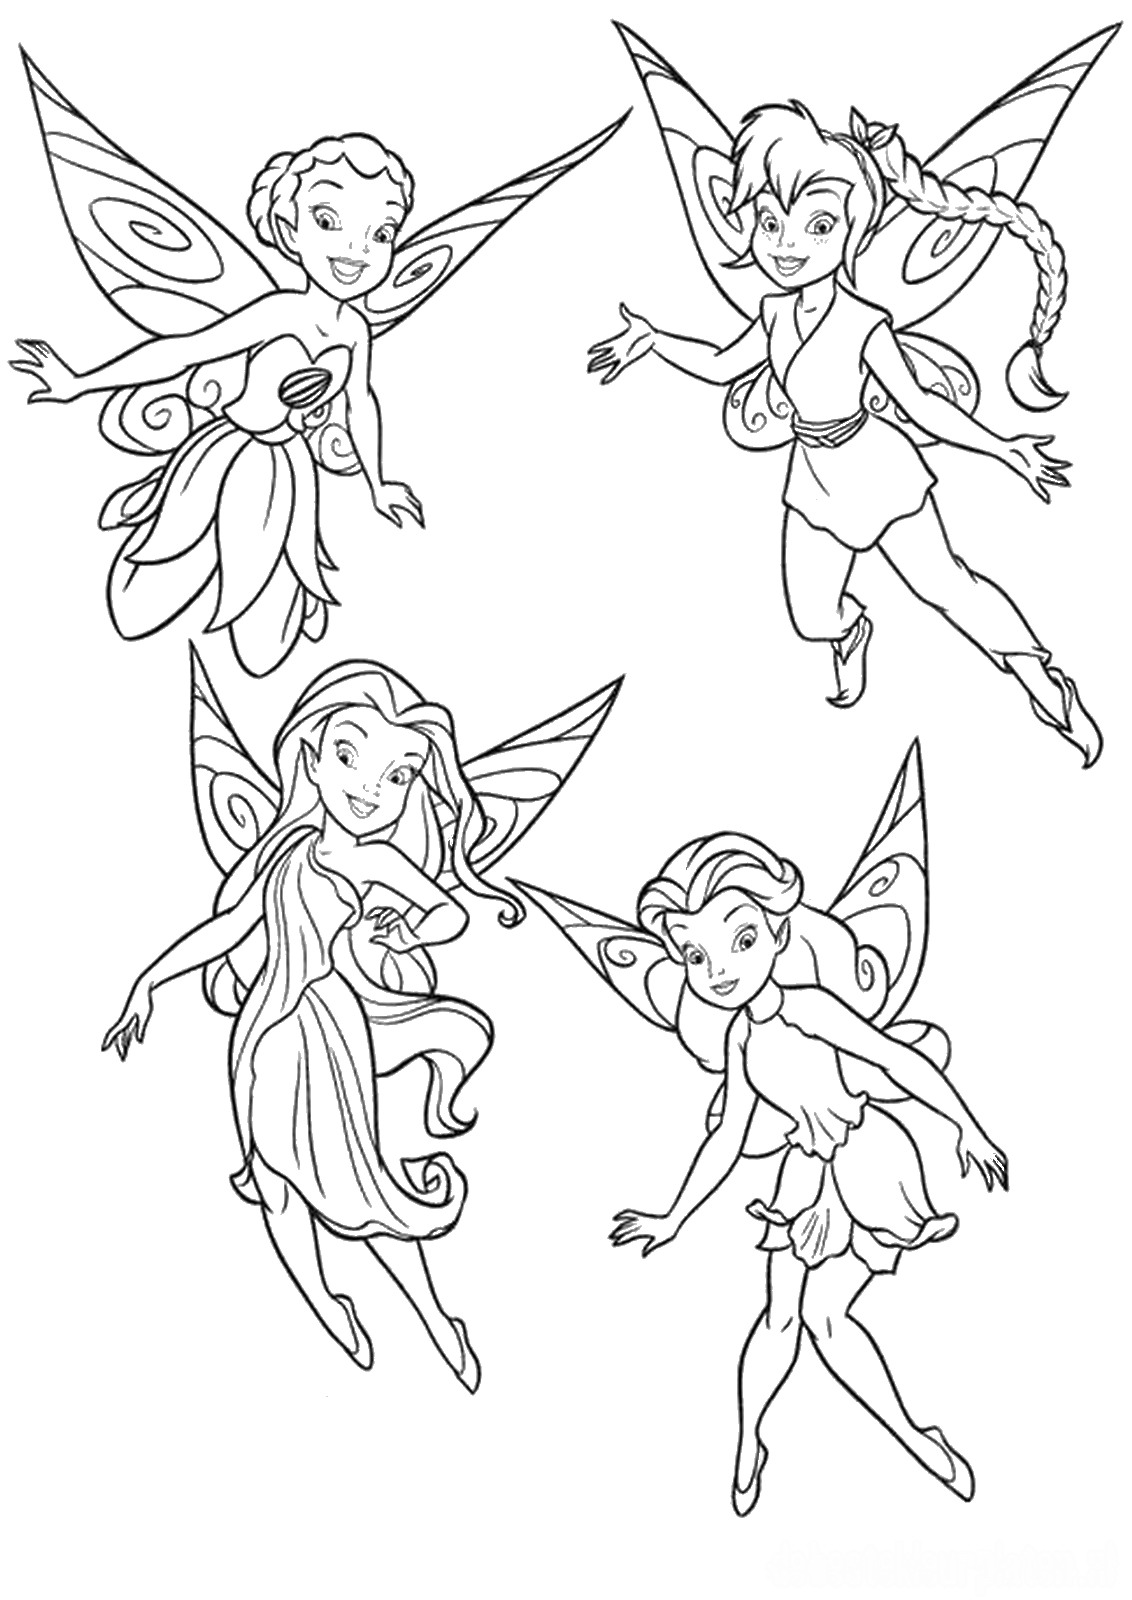 tinkerbell coloring coloring pages disney tinkerbell and friends divyajananiorg coloring tinkerbell